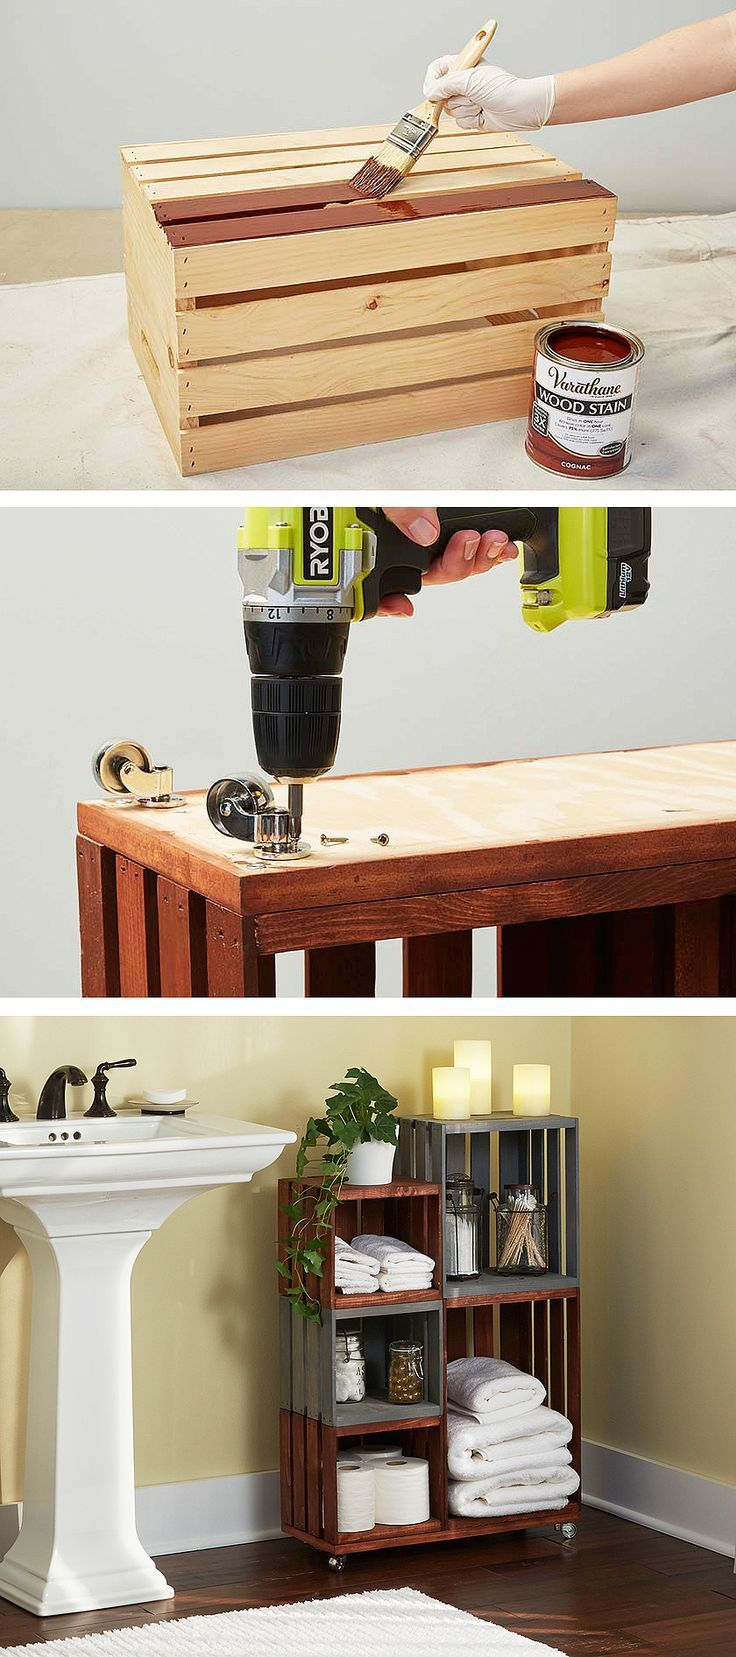 wood crates can be found in many home they are perfect for making of all kinds of furniture take a look at these diy wood crate projects - Diy House Decor